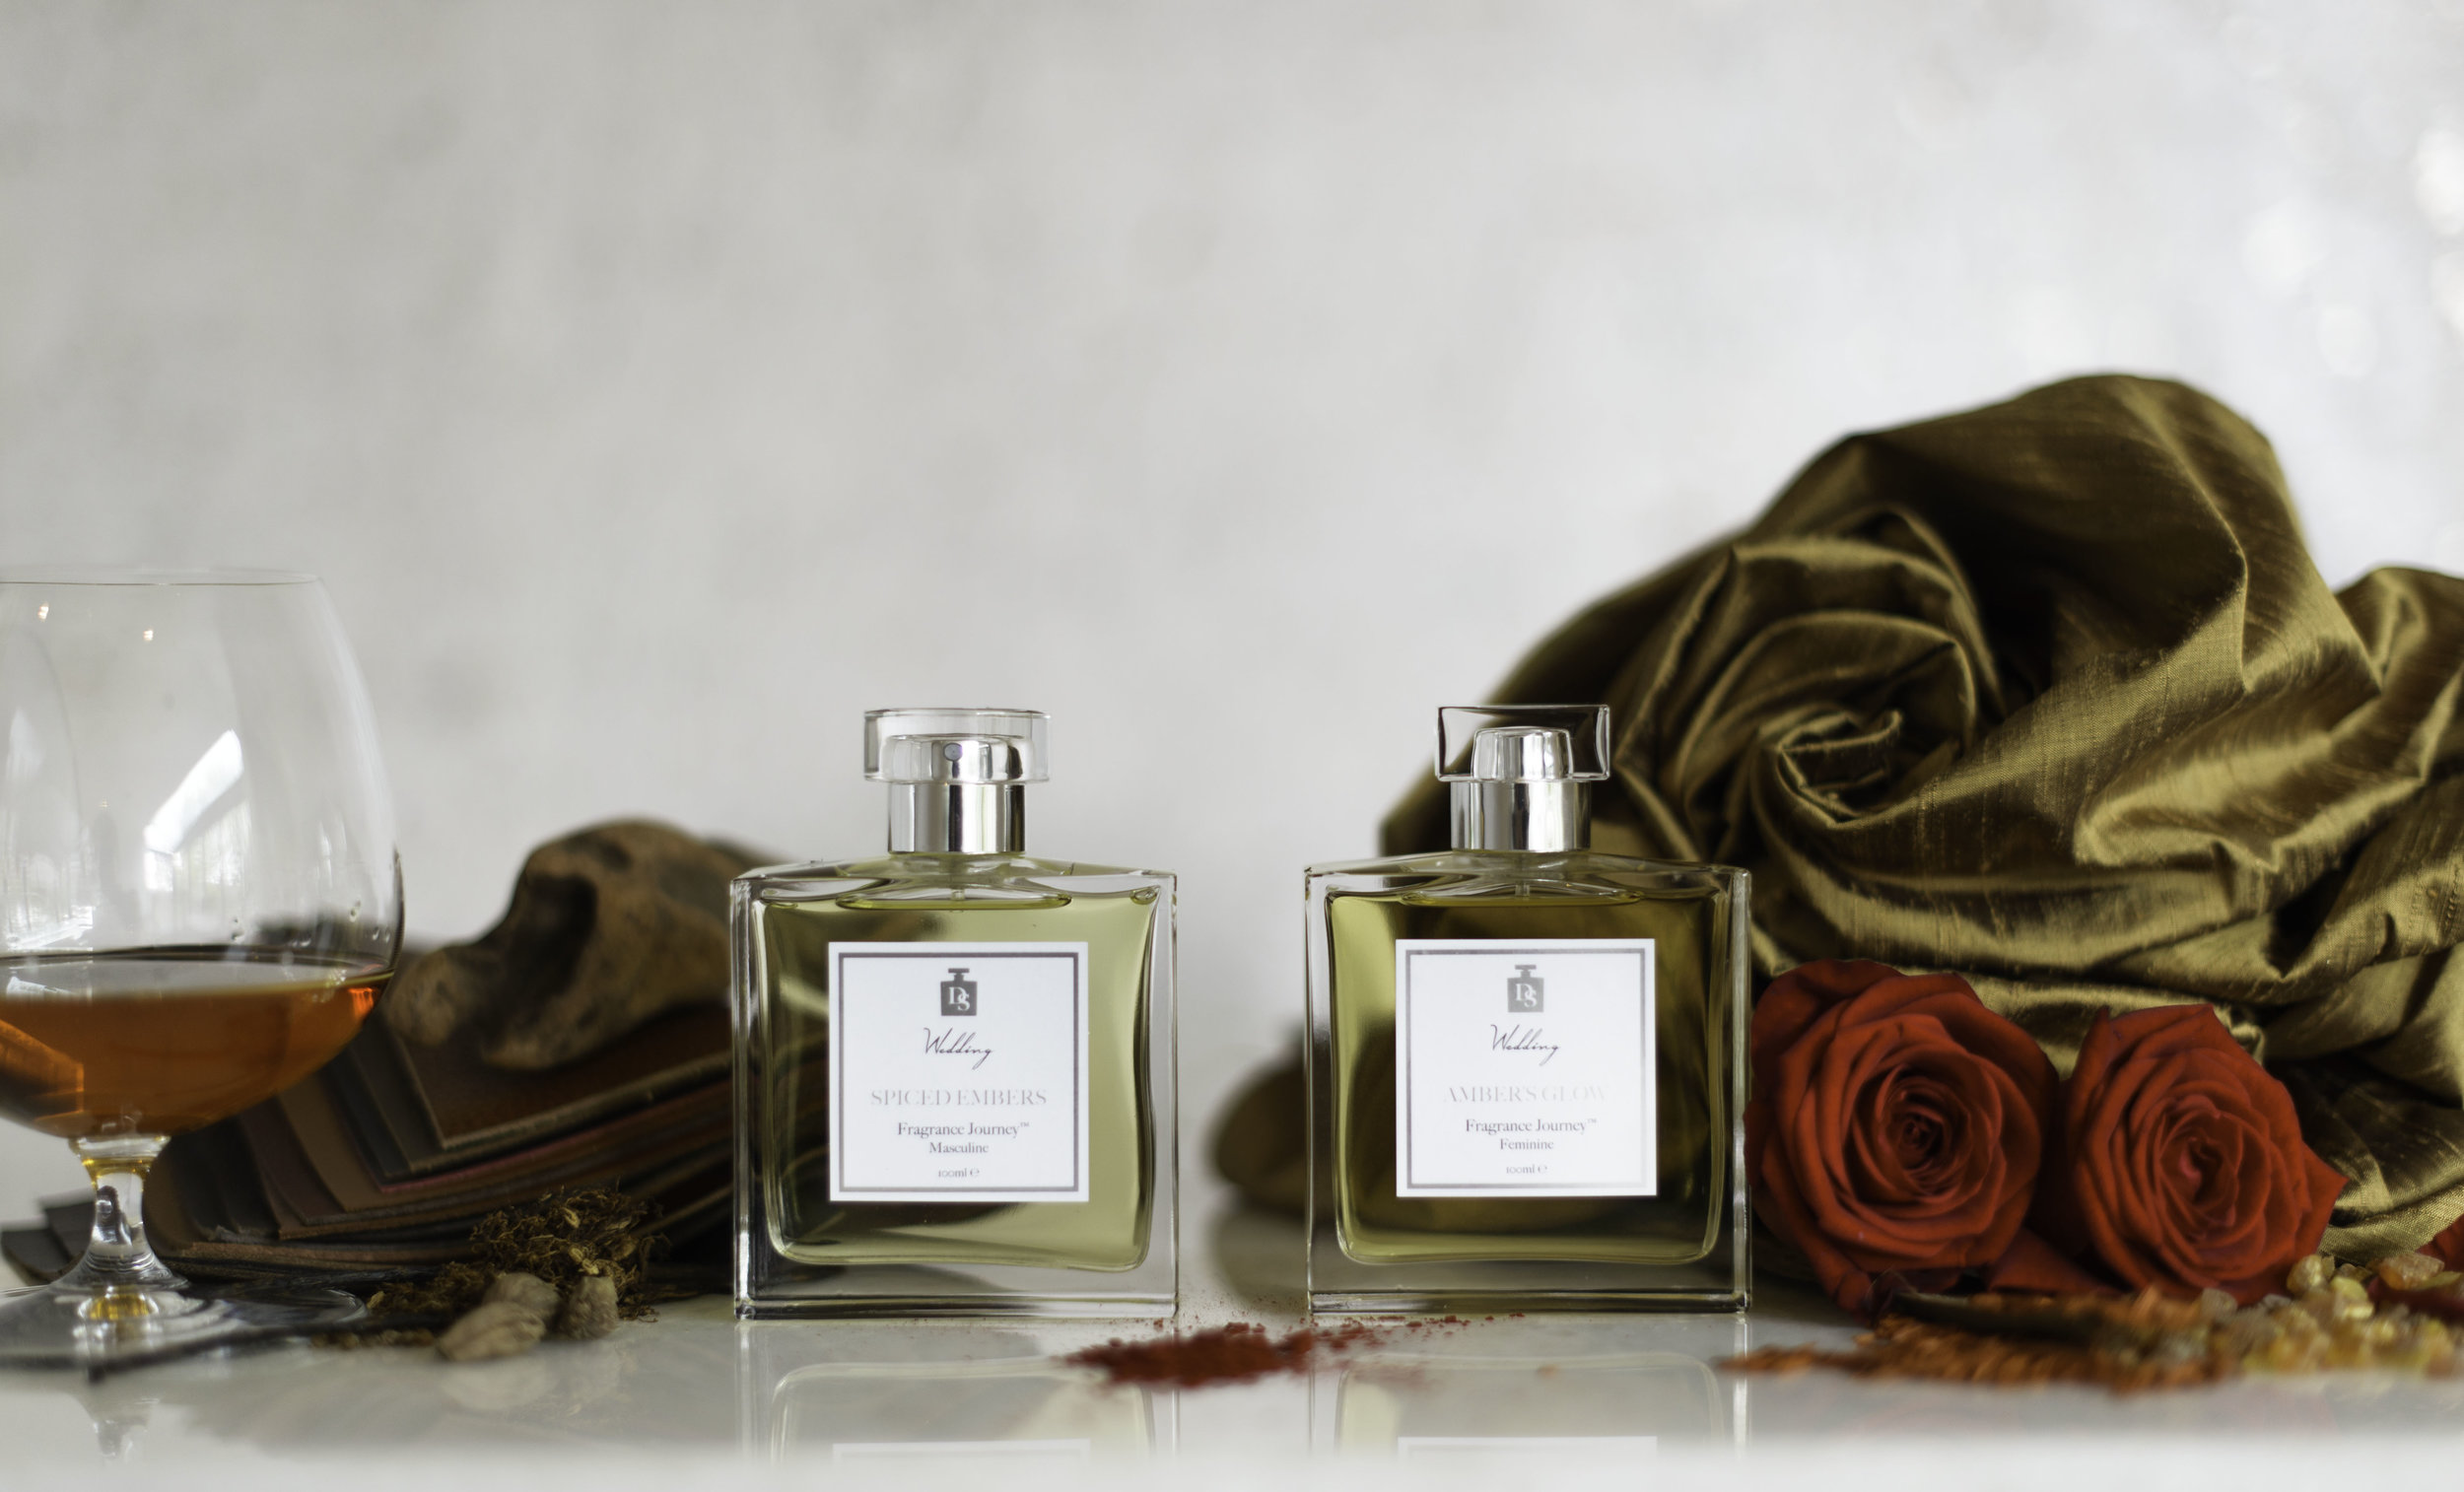 Radiate | Amber's Glow and Spiced Embers | Design in Scent | Lamare London | Luxury Wedding Planner London